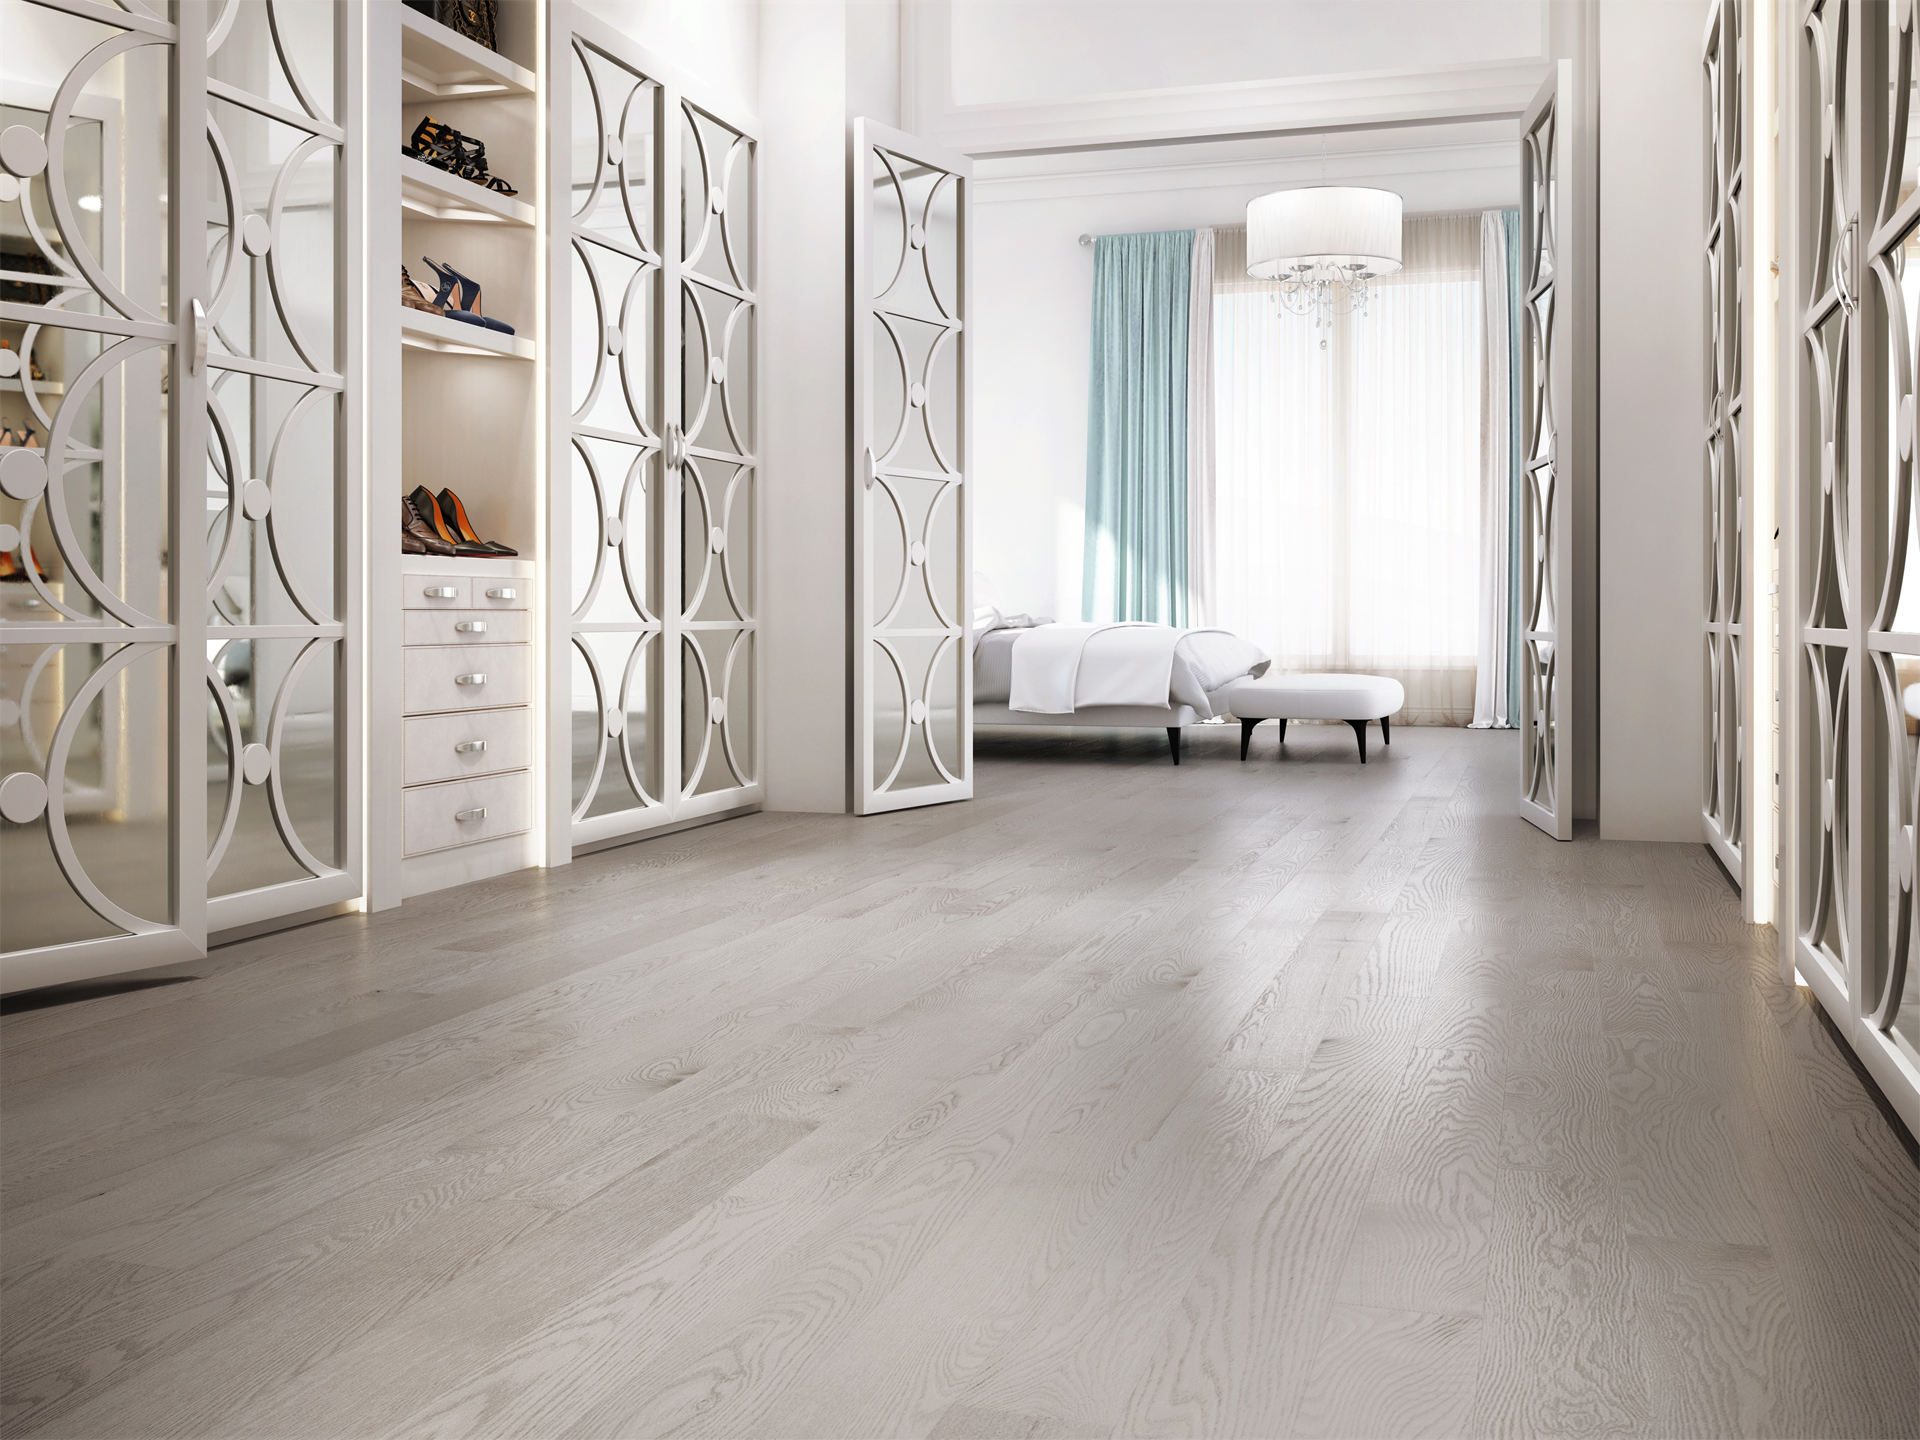 Tampa Wood Floor Company Offers Durable Finishes